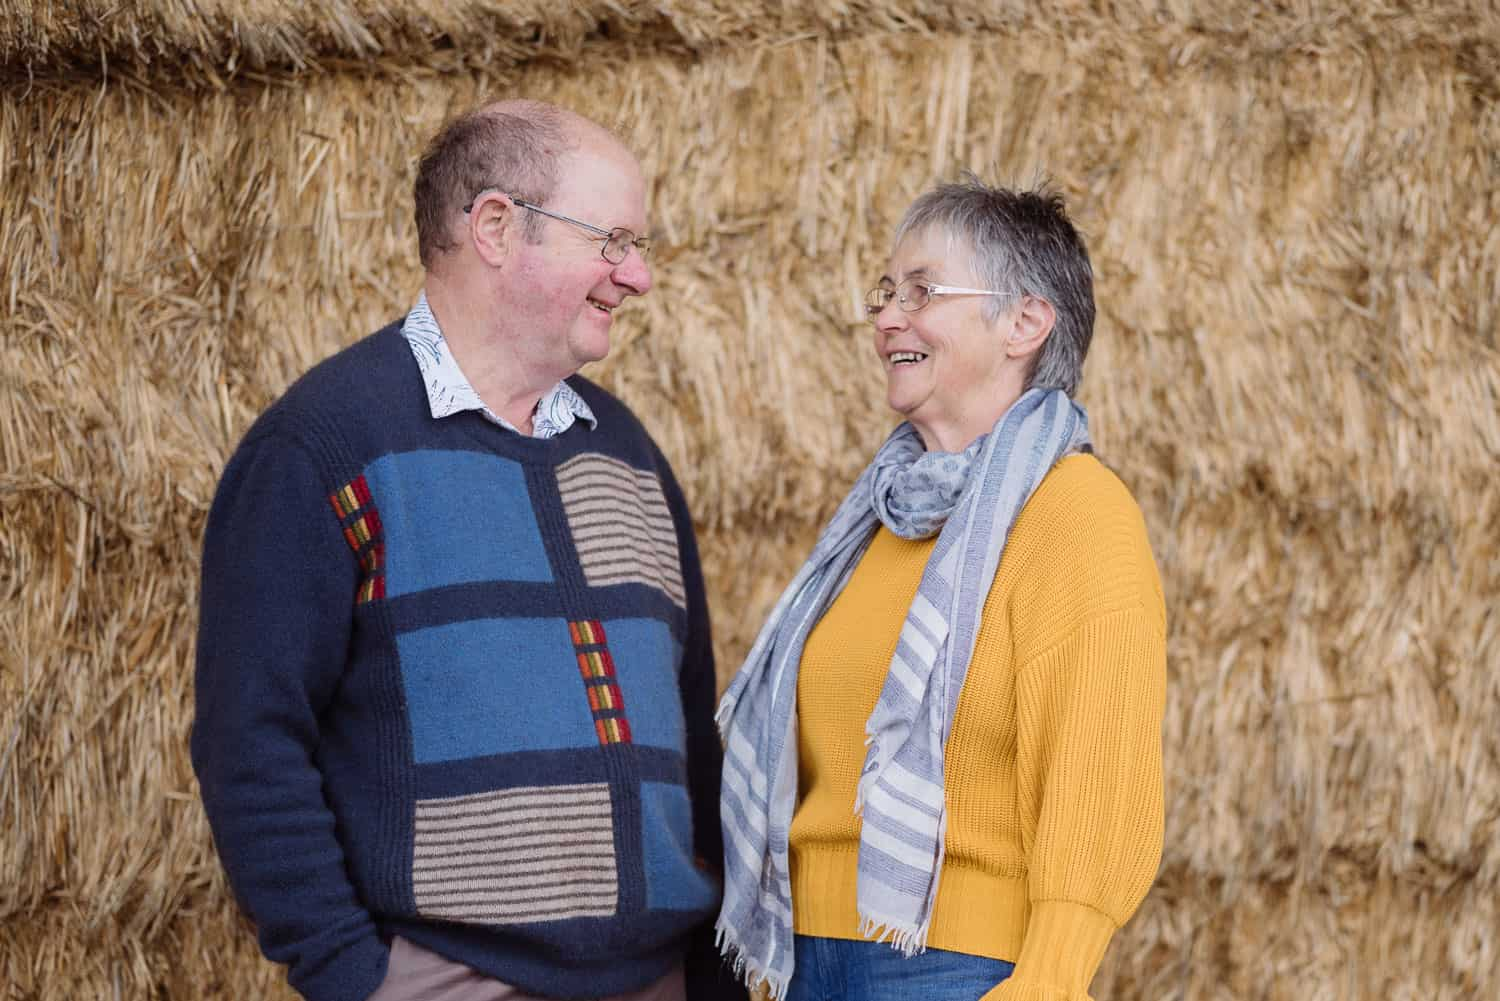 Portrait of an older couple in a hayshed